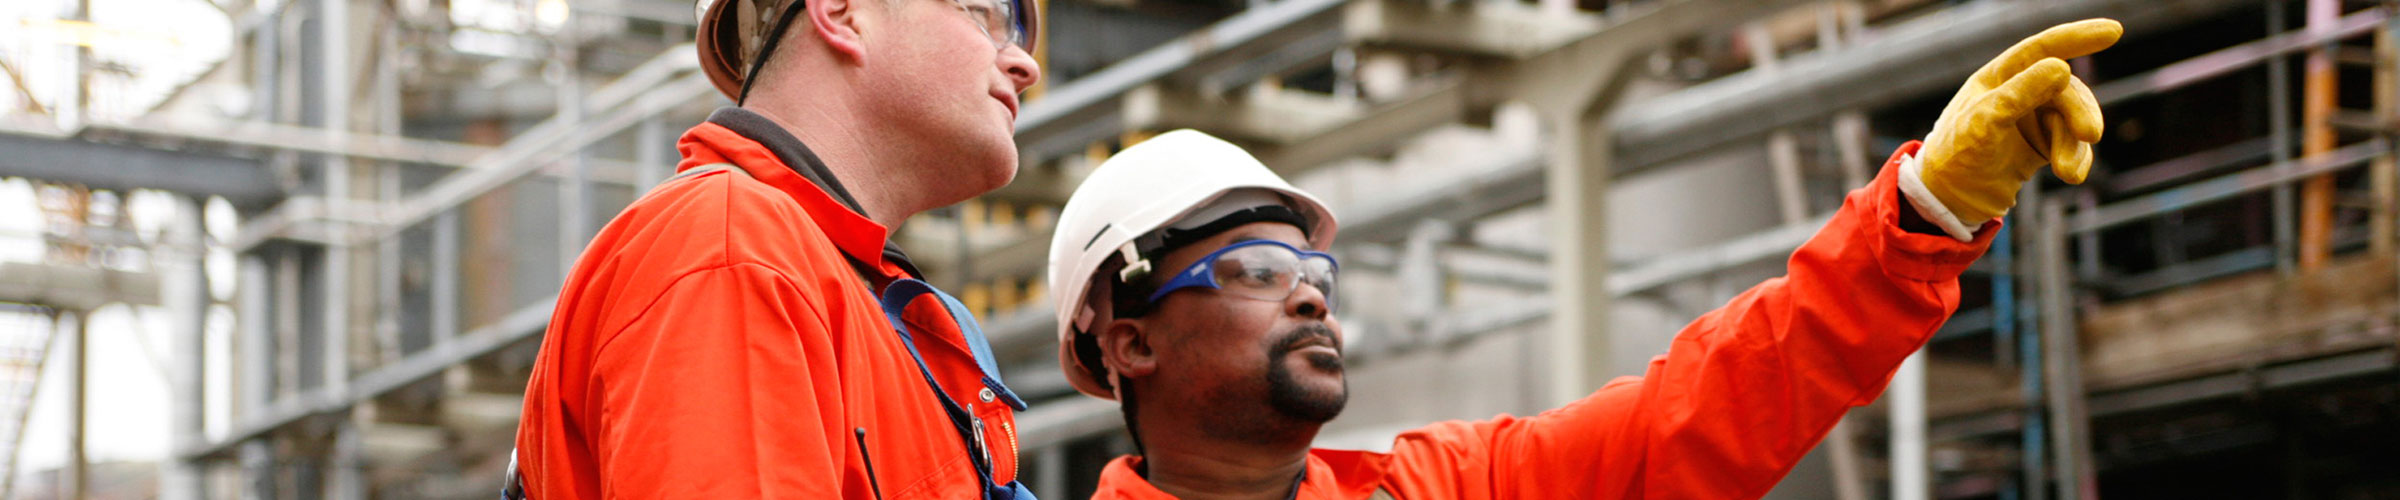 Safelift header image showing two men dress in construction clothing